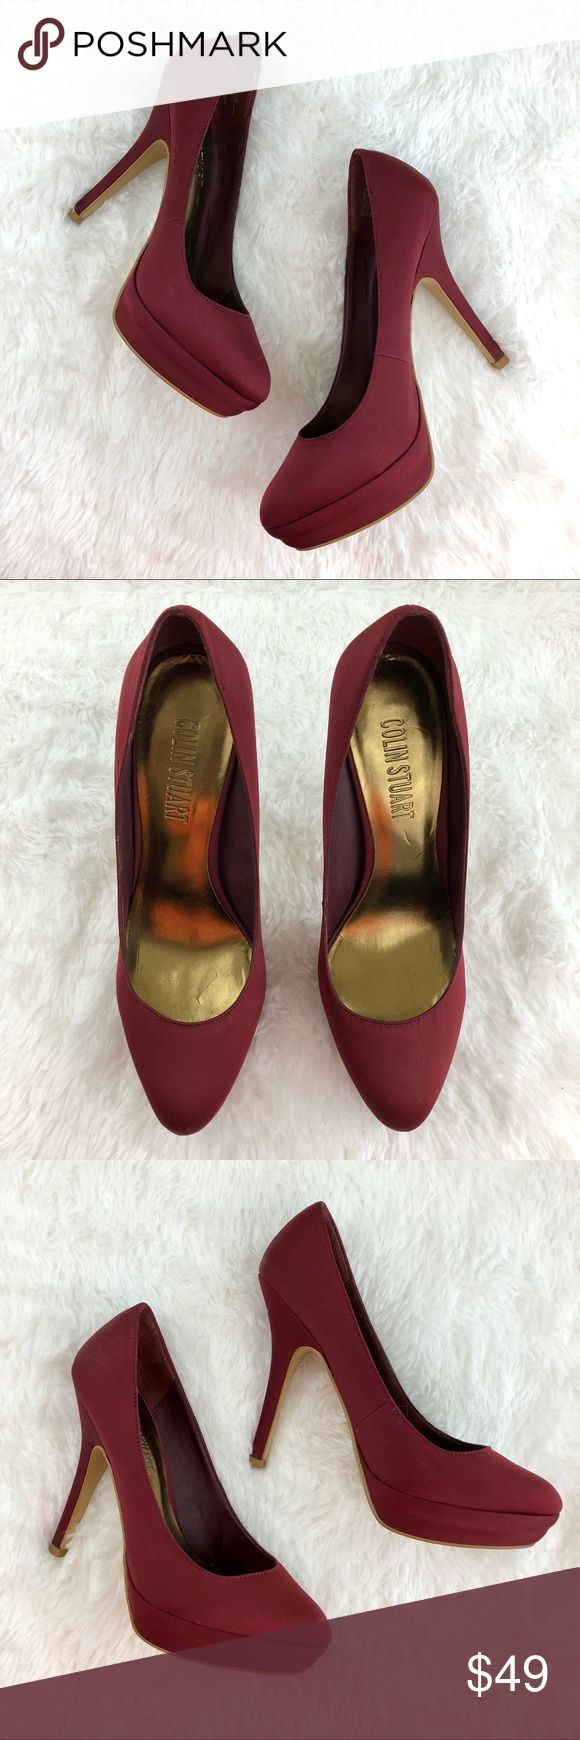 Colin Stuart Satin Platform Heel Colin Stuart satin platform heel. Minimal wear. Small scratch on side of each shoe and light scuff on rear side of left shoe - see pictures. Otherwise in excellent condition. Colin Stuart Shoes Heels